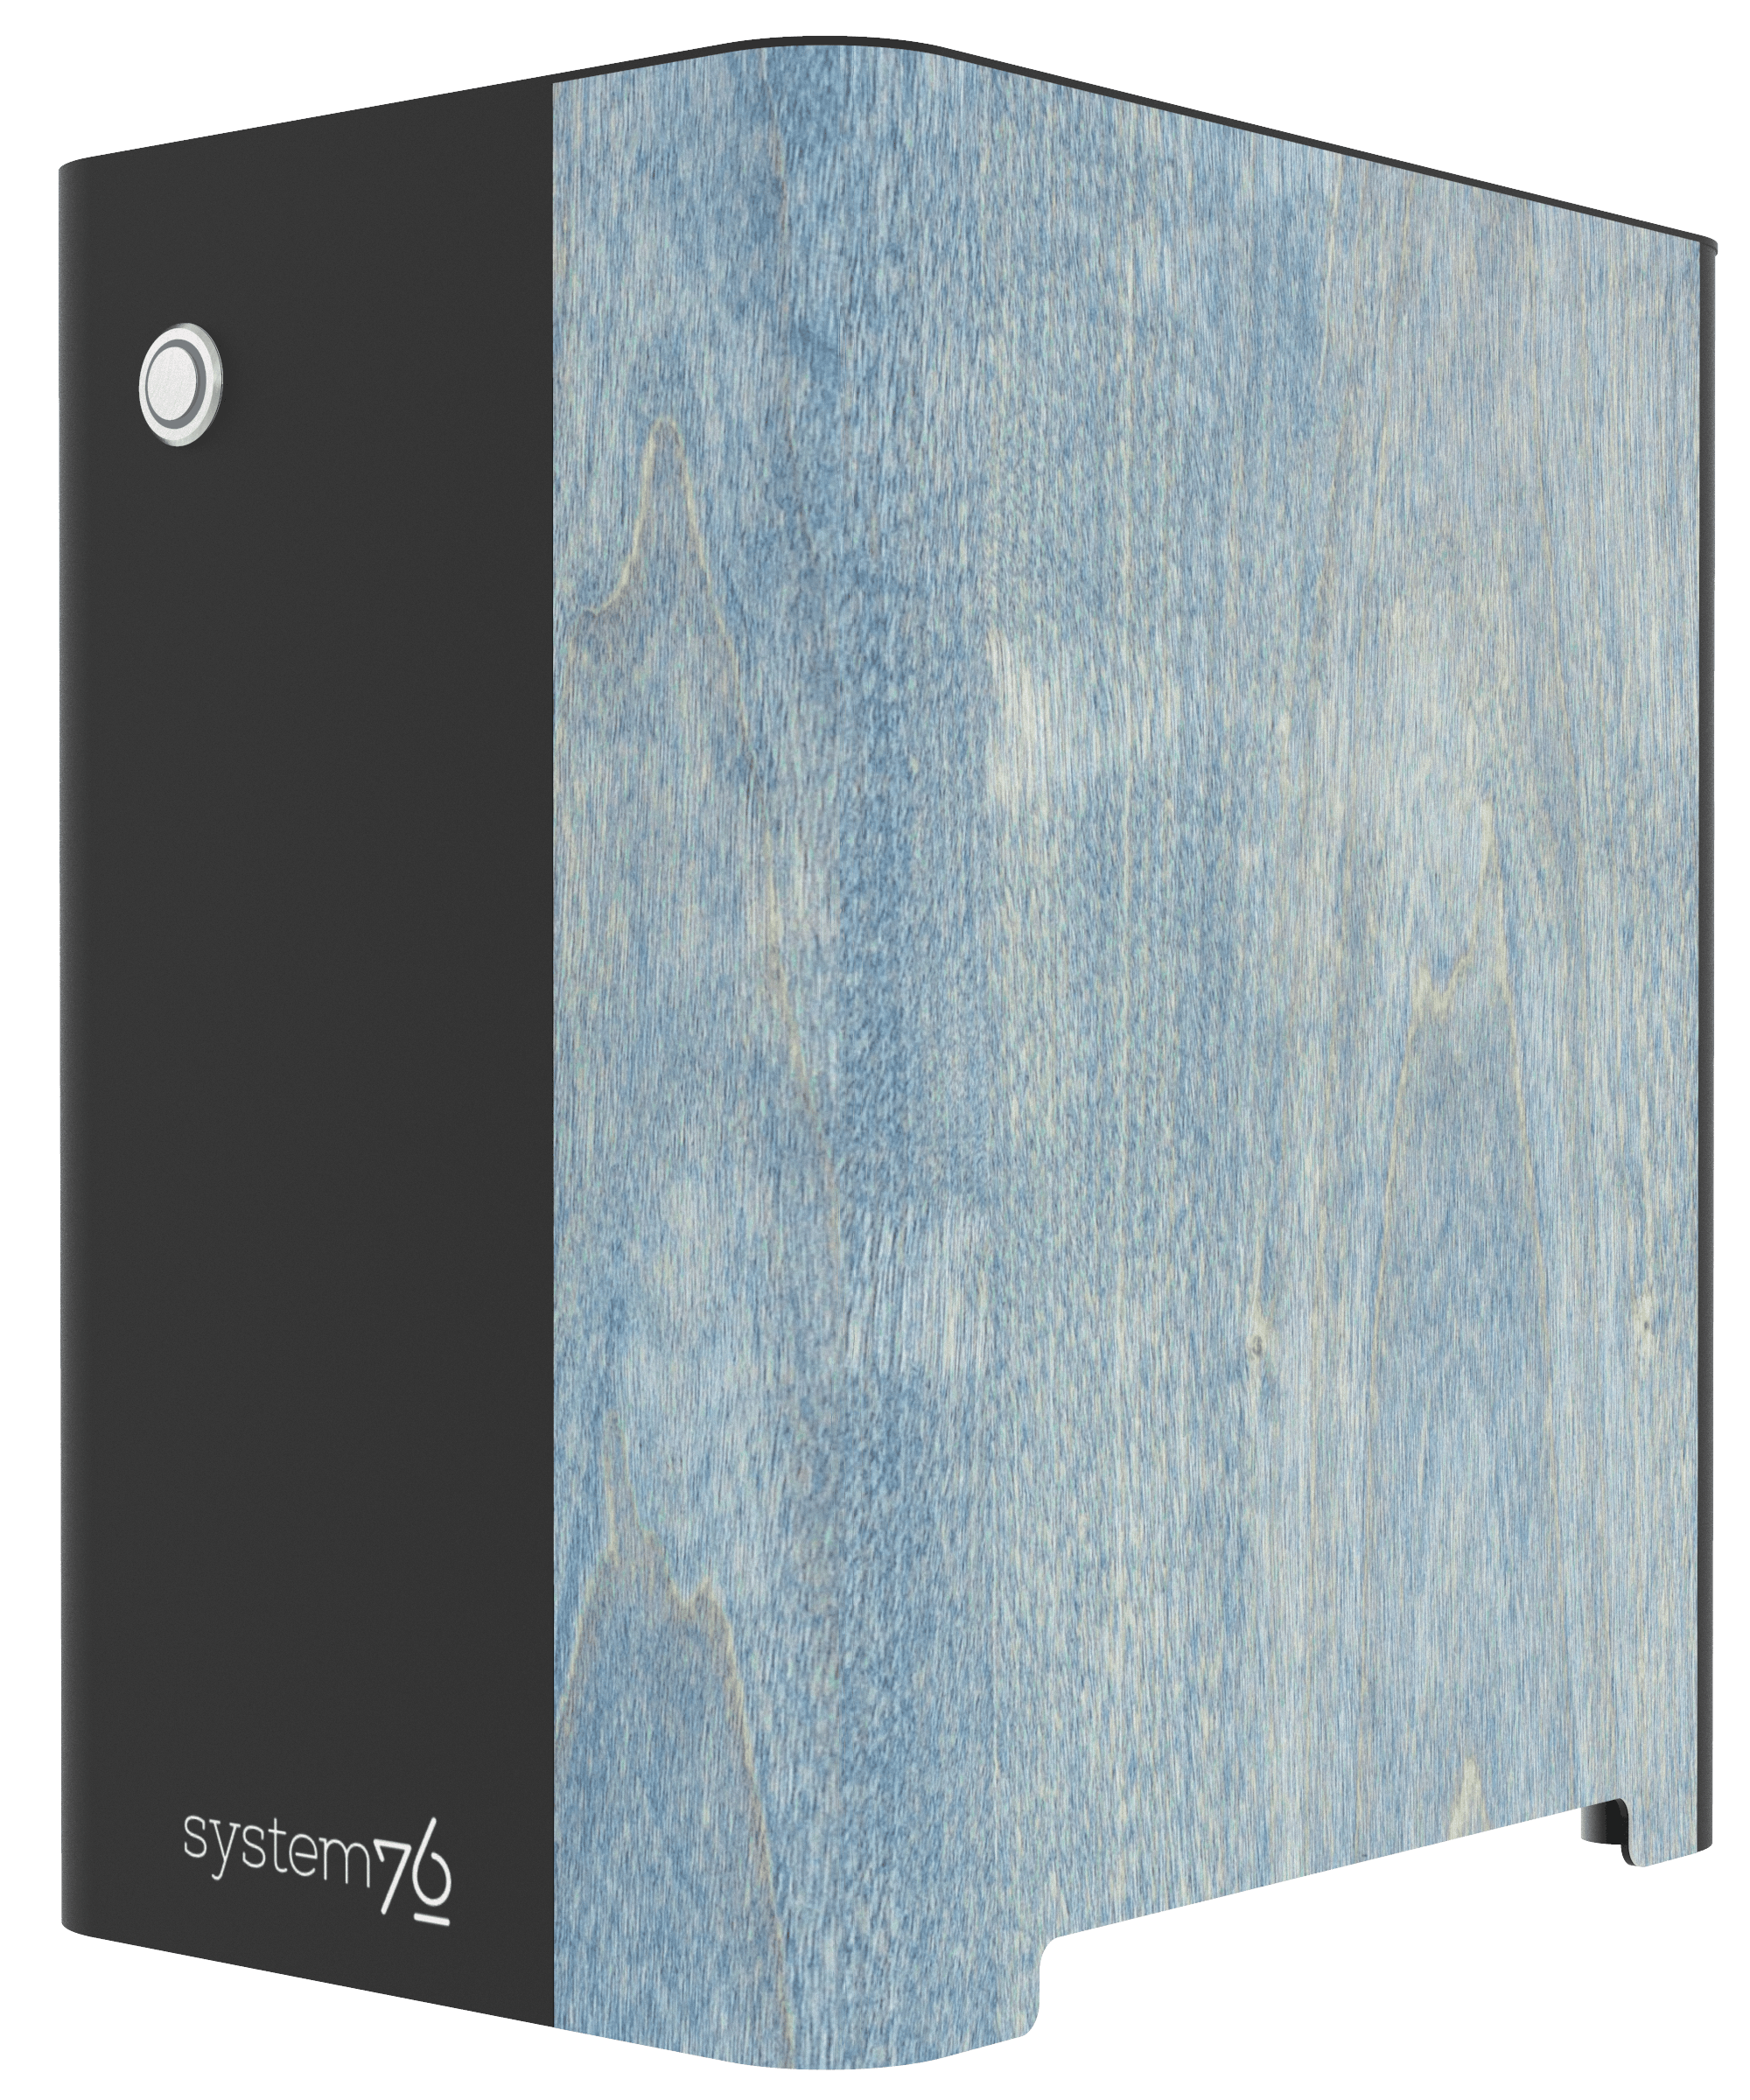 Side view of the machine showing birch veneer component, hand-polished, and stained light blue.